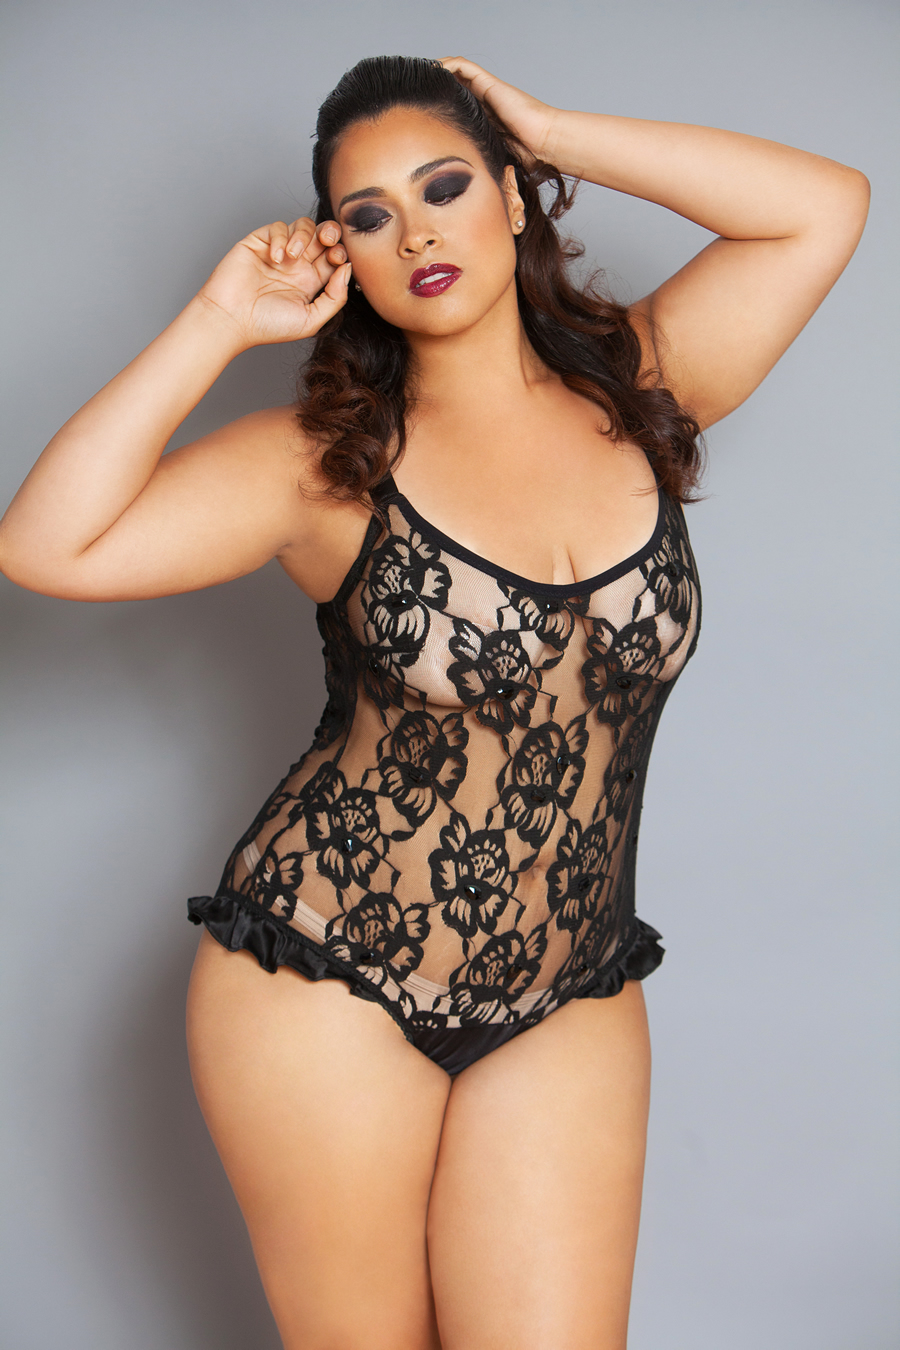 Shop the latest Lingerie on Clearance & Sale. Find great prices on Bras, Panties, Corsets, Garter Belts, Teddies & more at Frederick's of Hollywood.